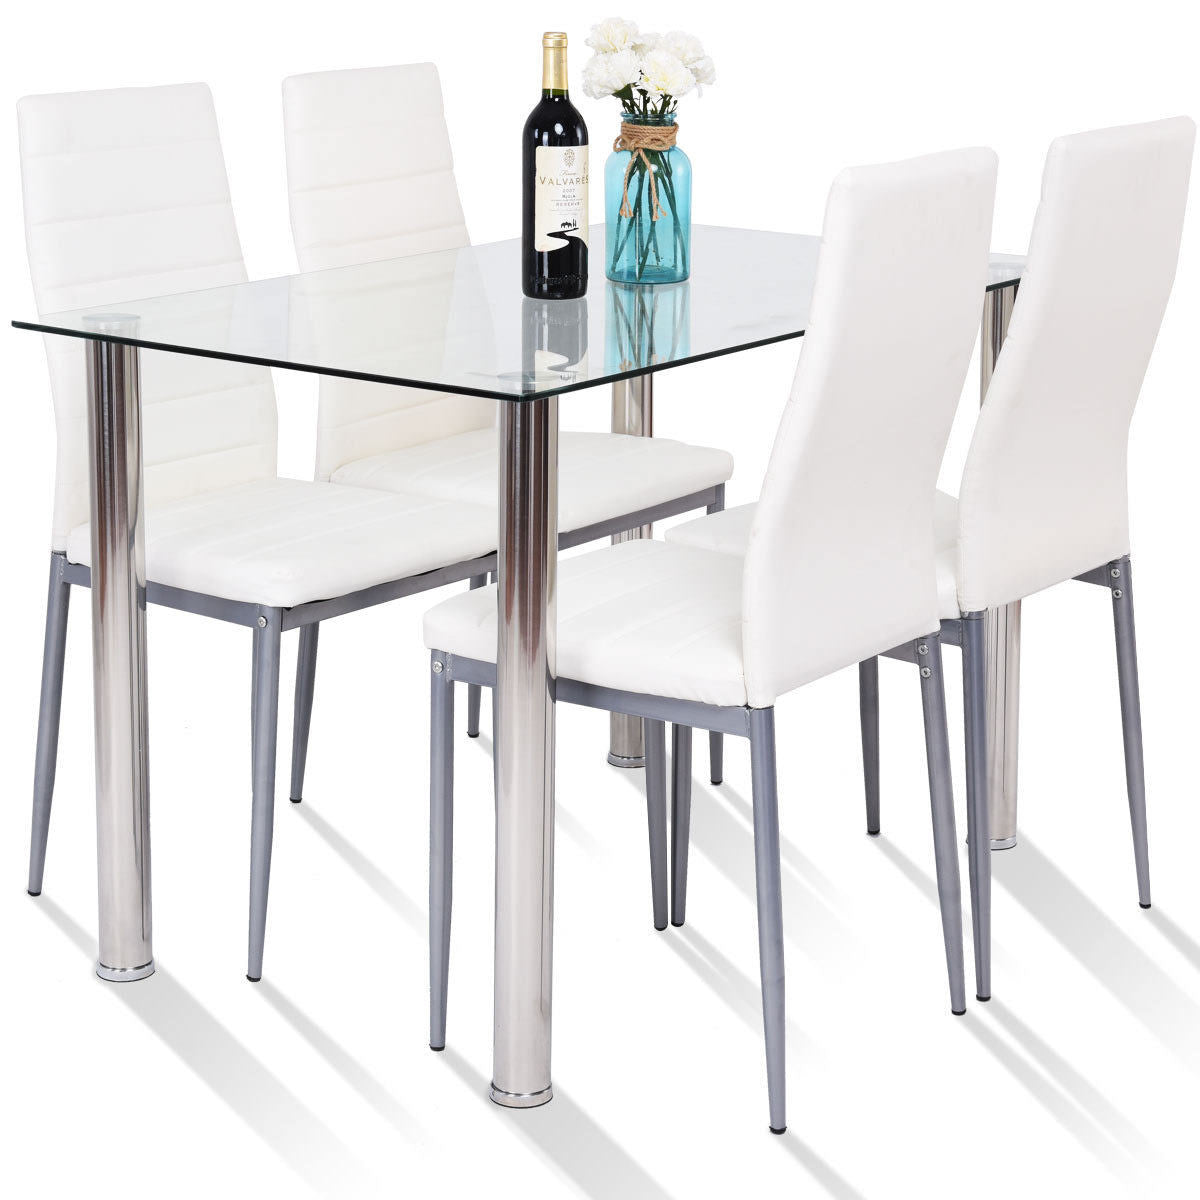 5 Piece Dining Set Table and 4 Chairs Glass Metal Kitchen Breakfast  Furniture